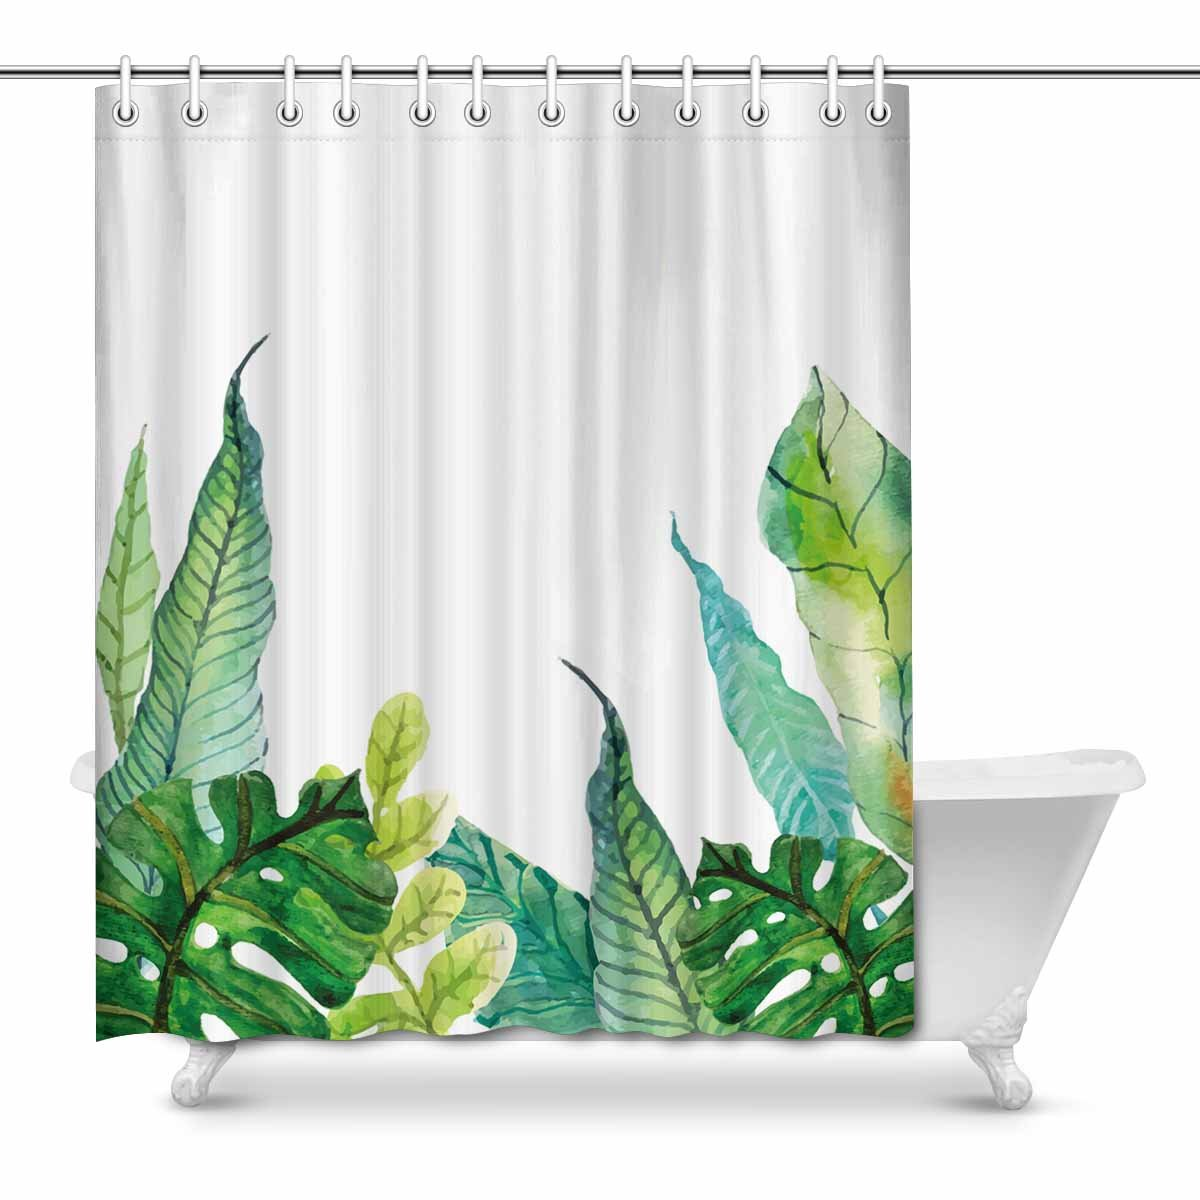 Banana Leaf Shower Curtain Mkhert Summer Hawaiian Tropical Palm Tree Banana Leaves Monstera Home Decor Waterproof Polyester Fabric Shower Curtain Bathroom Sets 66x72 Inch